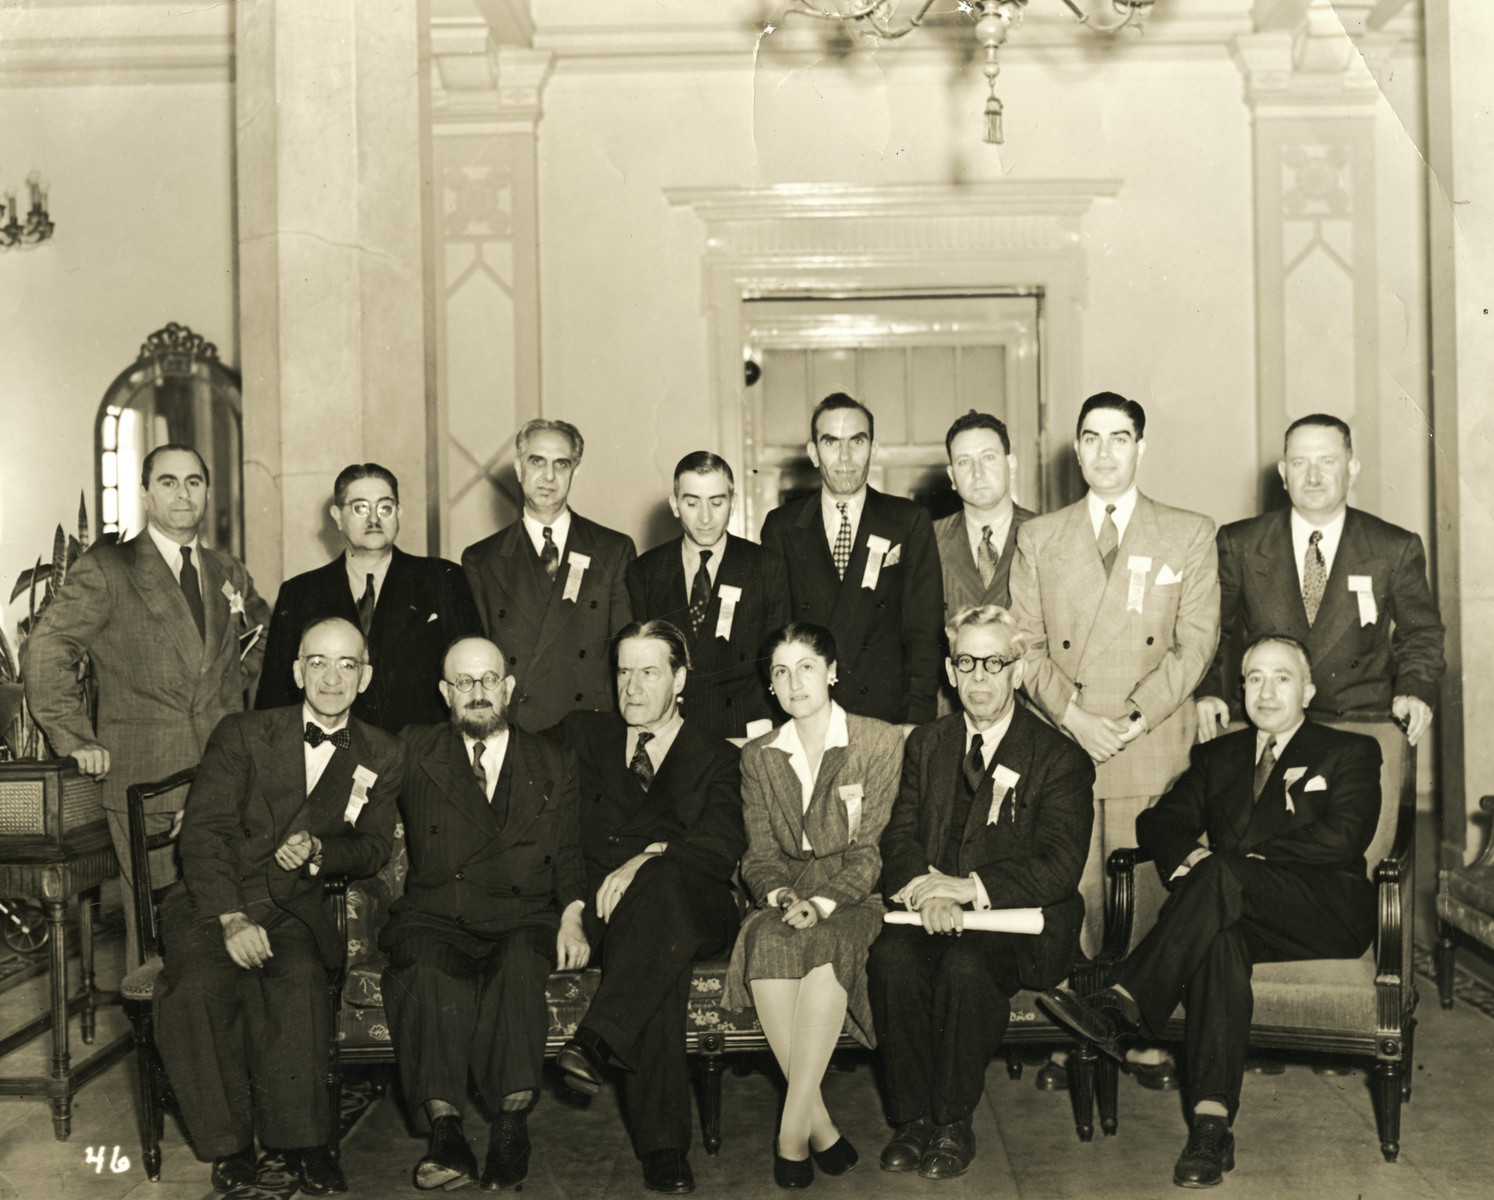 Group portrait of the North African delegation to the 1944 War Emergency Conference of the World Jewish Congress.   Prosper Cohen is pictured standing fourth from the right, top row. Also pictured is Rabbi Stephen Wise, seated third from the left.